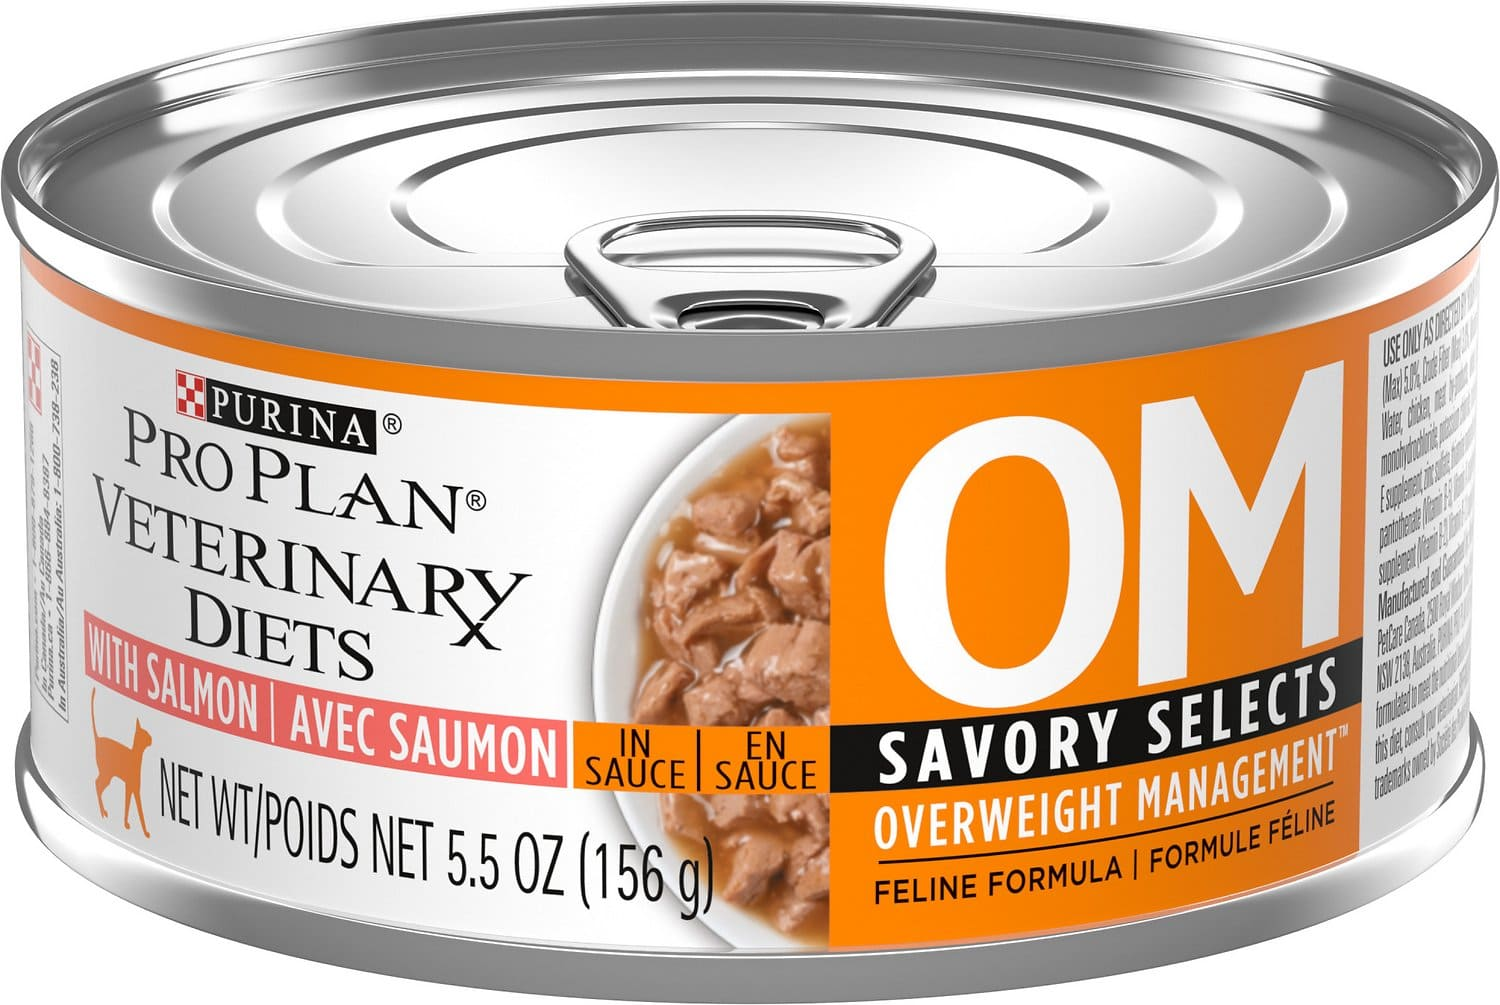 Purina Pro Plan Veterinary Diets OM Overweight Management Savory Selects Canned Formula 24 x 5.5 oz can Salmon 1